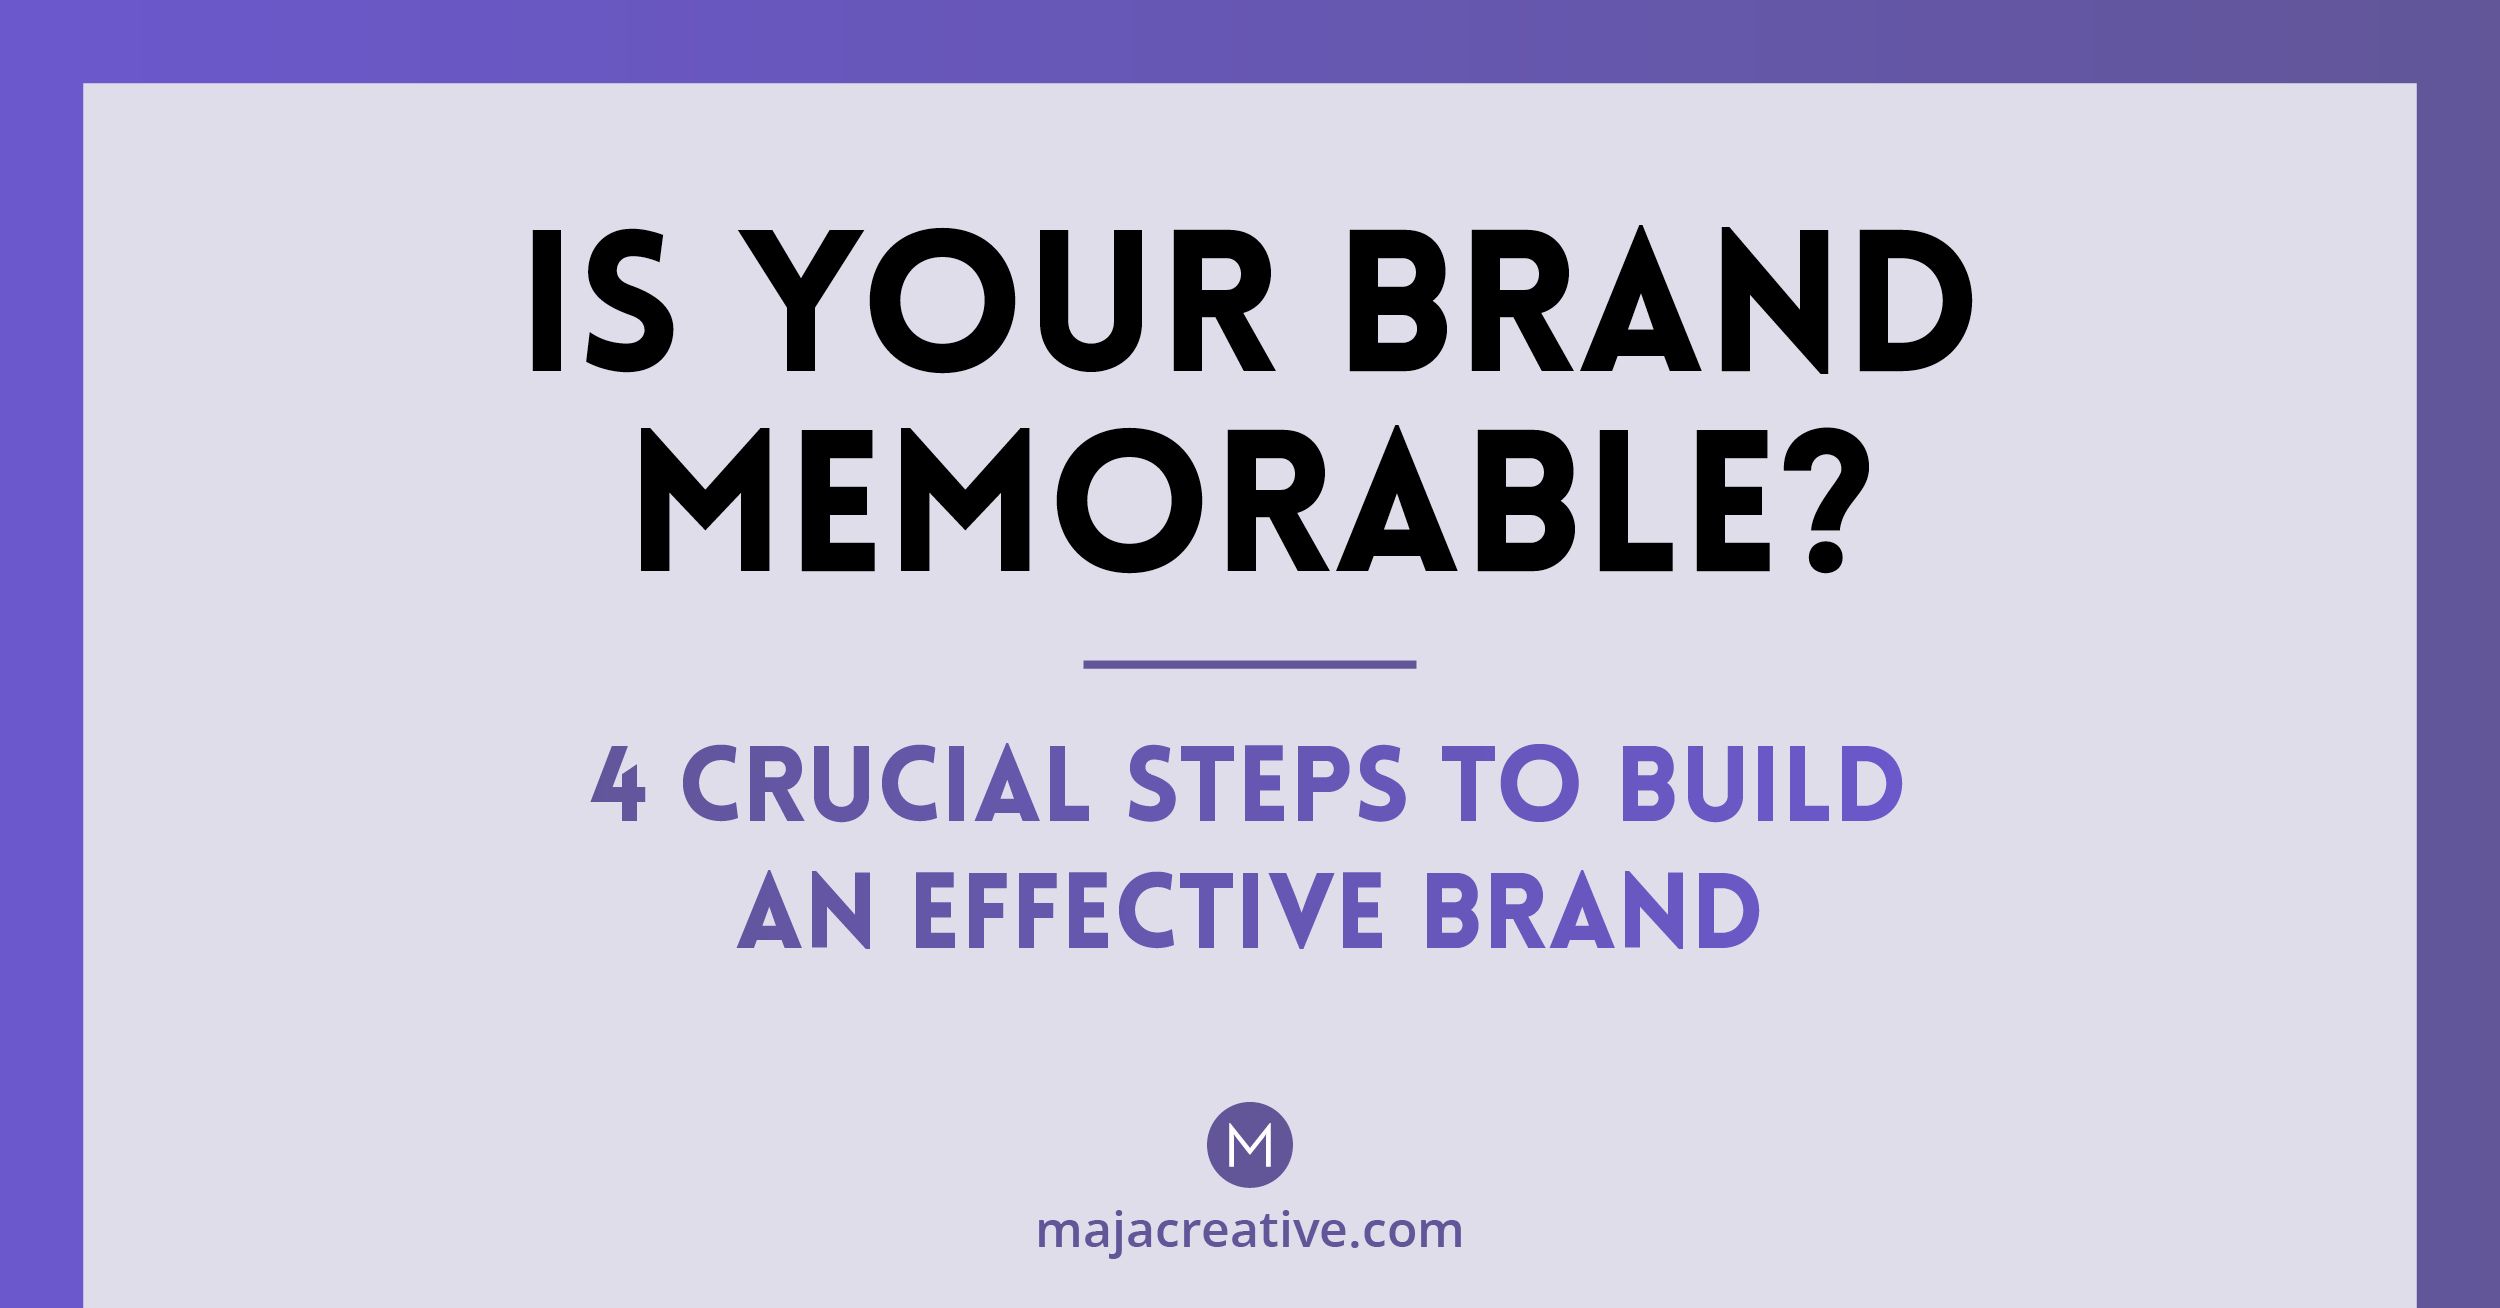 Is your brand memorable?4 crucial steps to effective branding